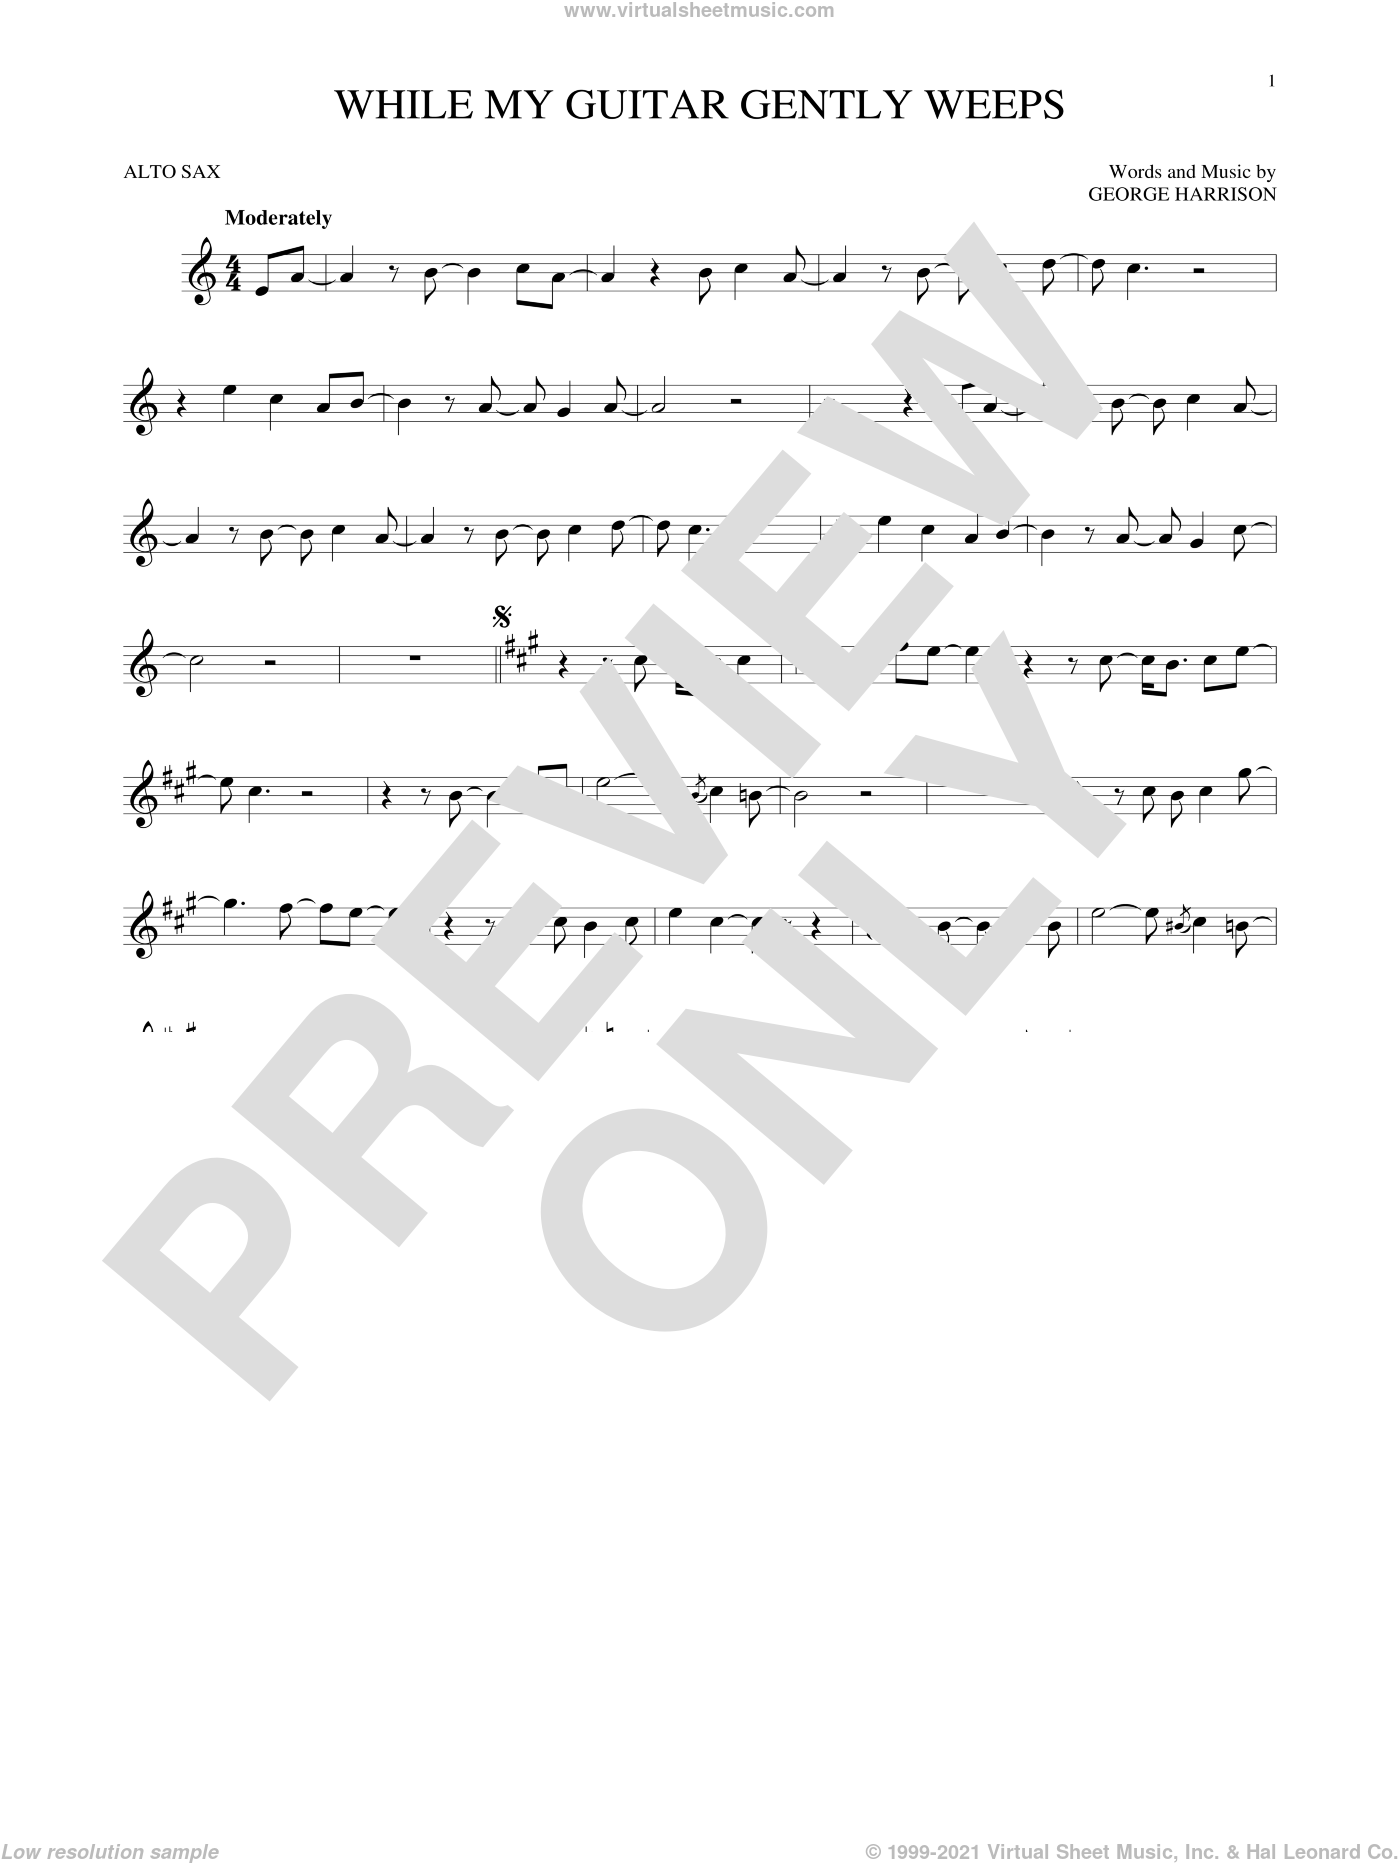 While My Guitar Gently Weeps sheet music for alto saxophone solo by The Beatles